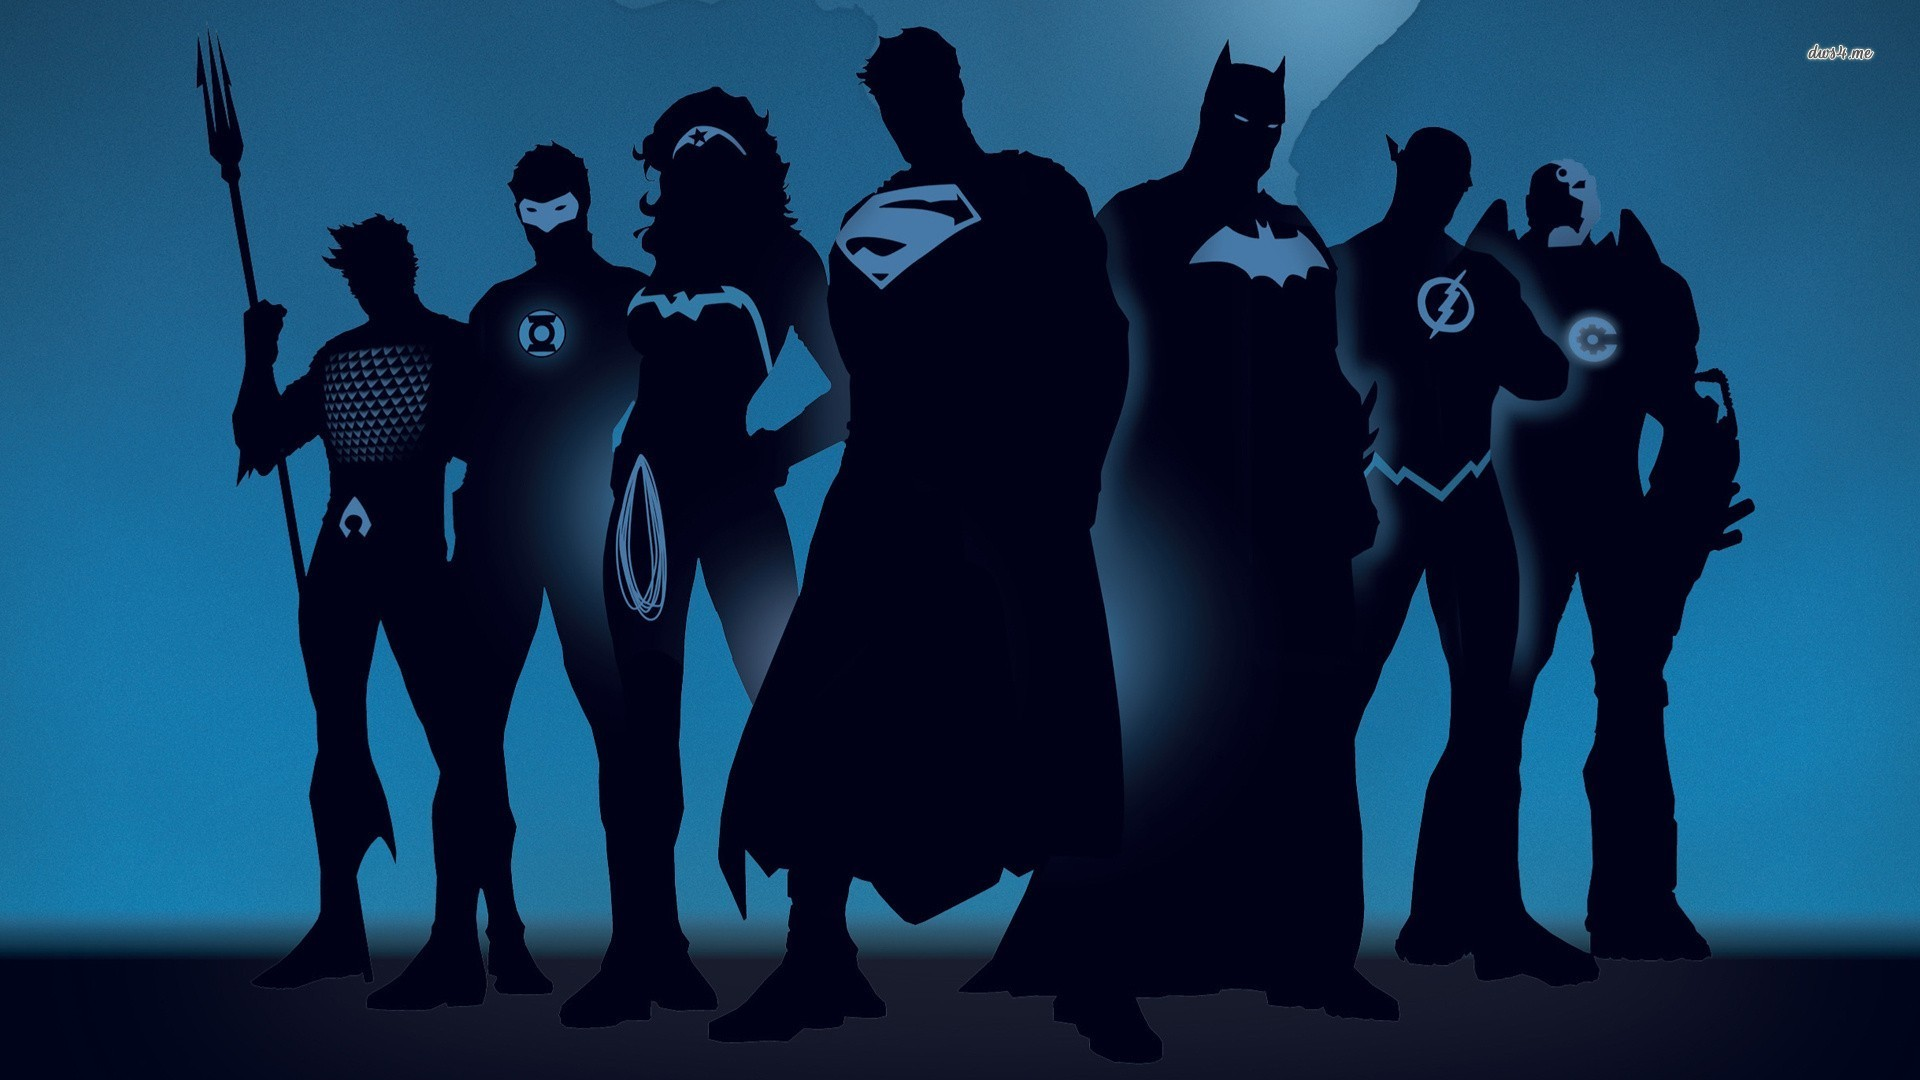 wallpaper 1280x800 Superhero silhouettes wallpaper 1366x768 Superhero 1920x1080